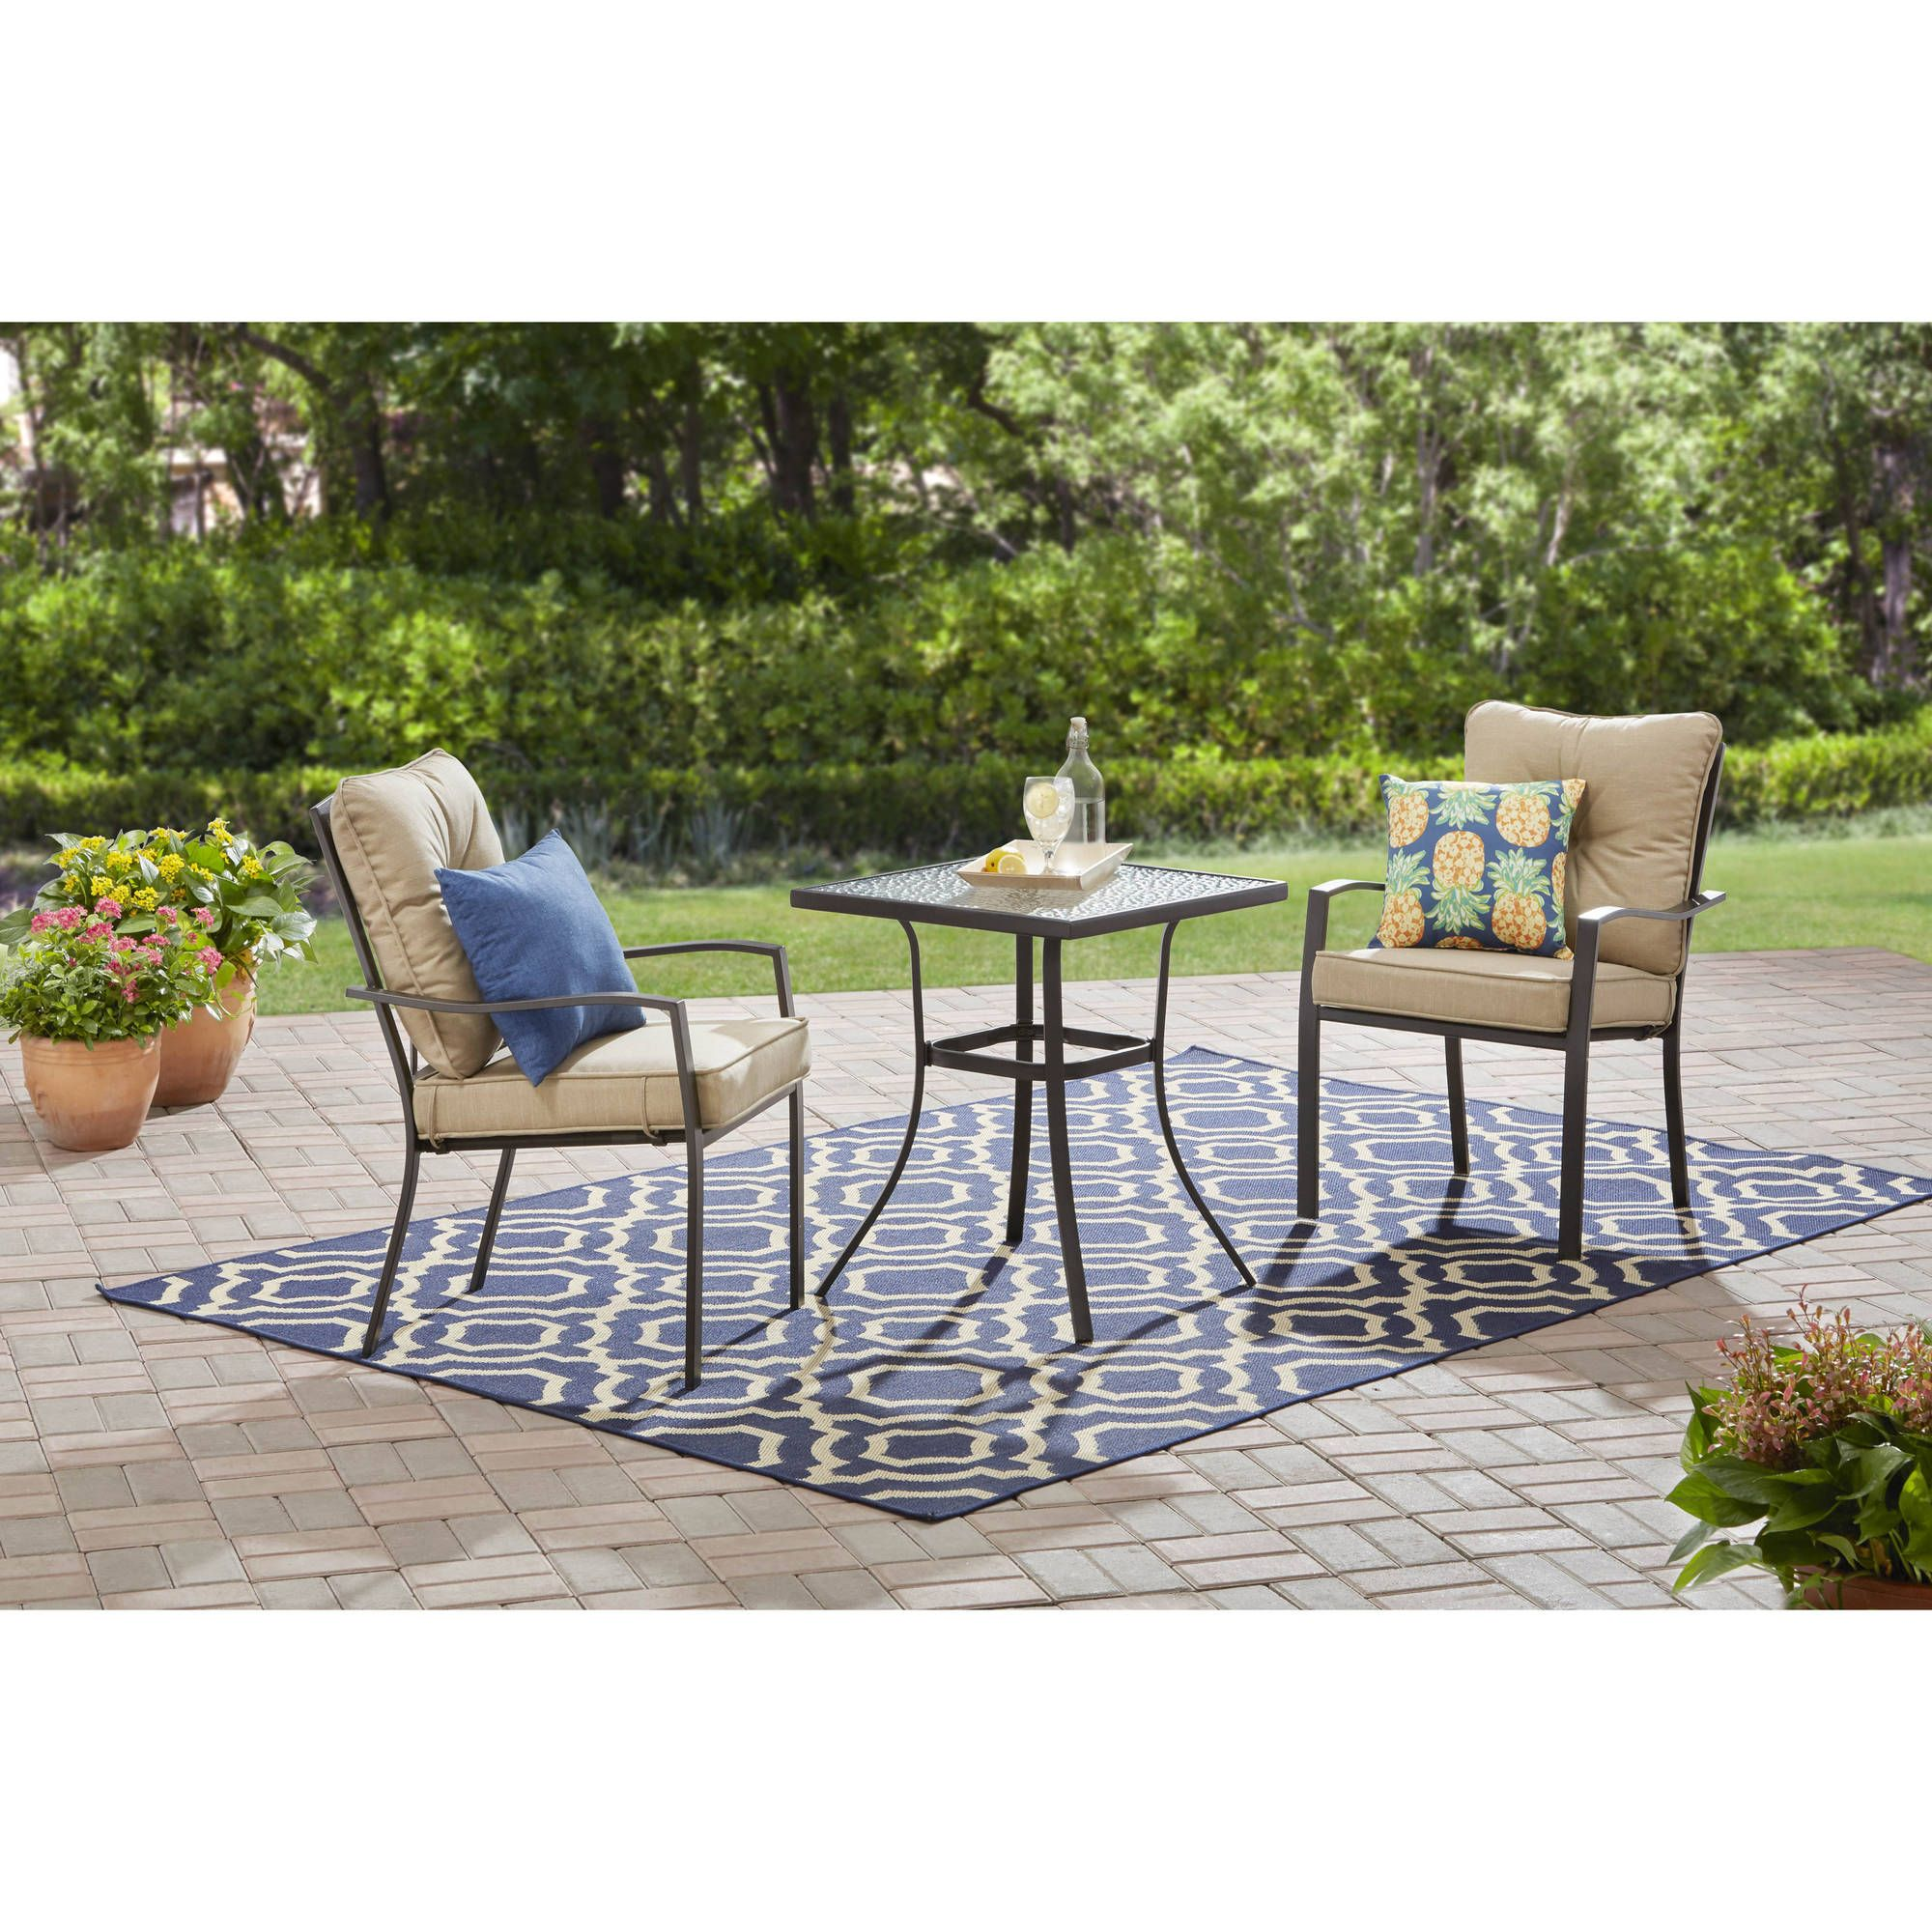 Download Wallpaper Where To Buy Mainstay Patio Furniture